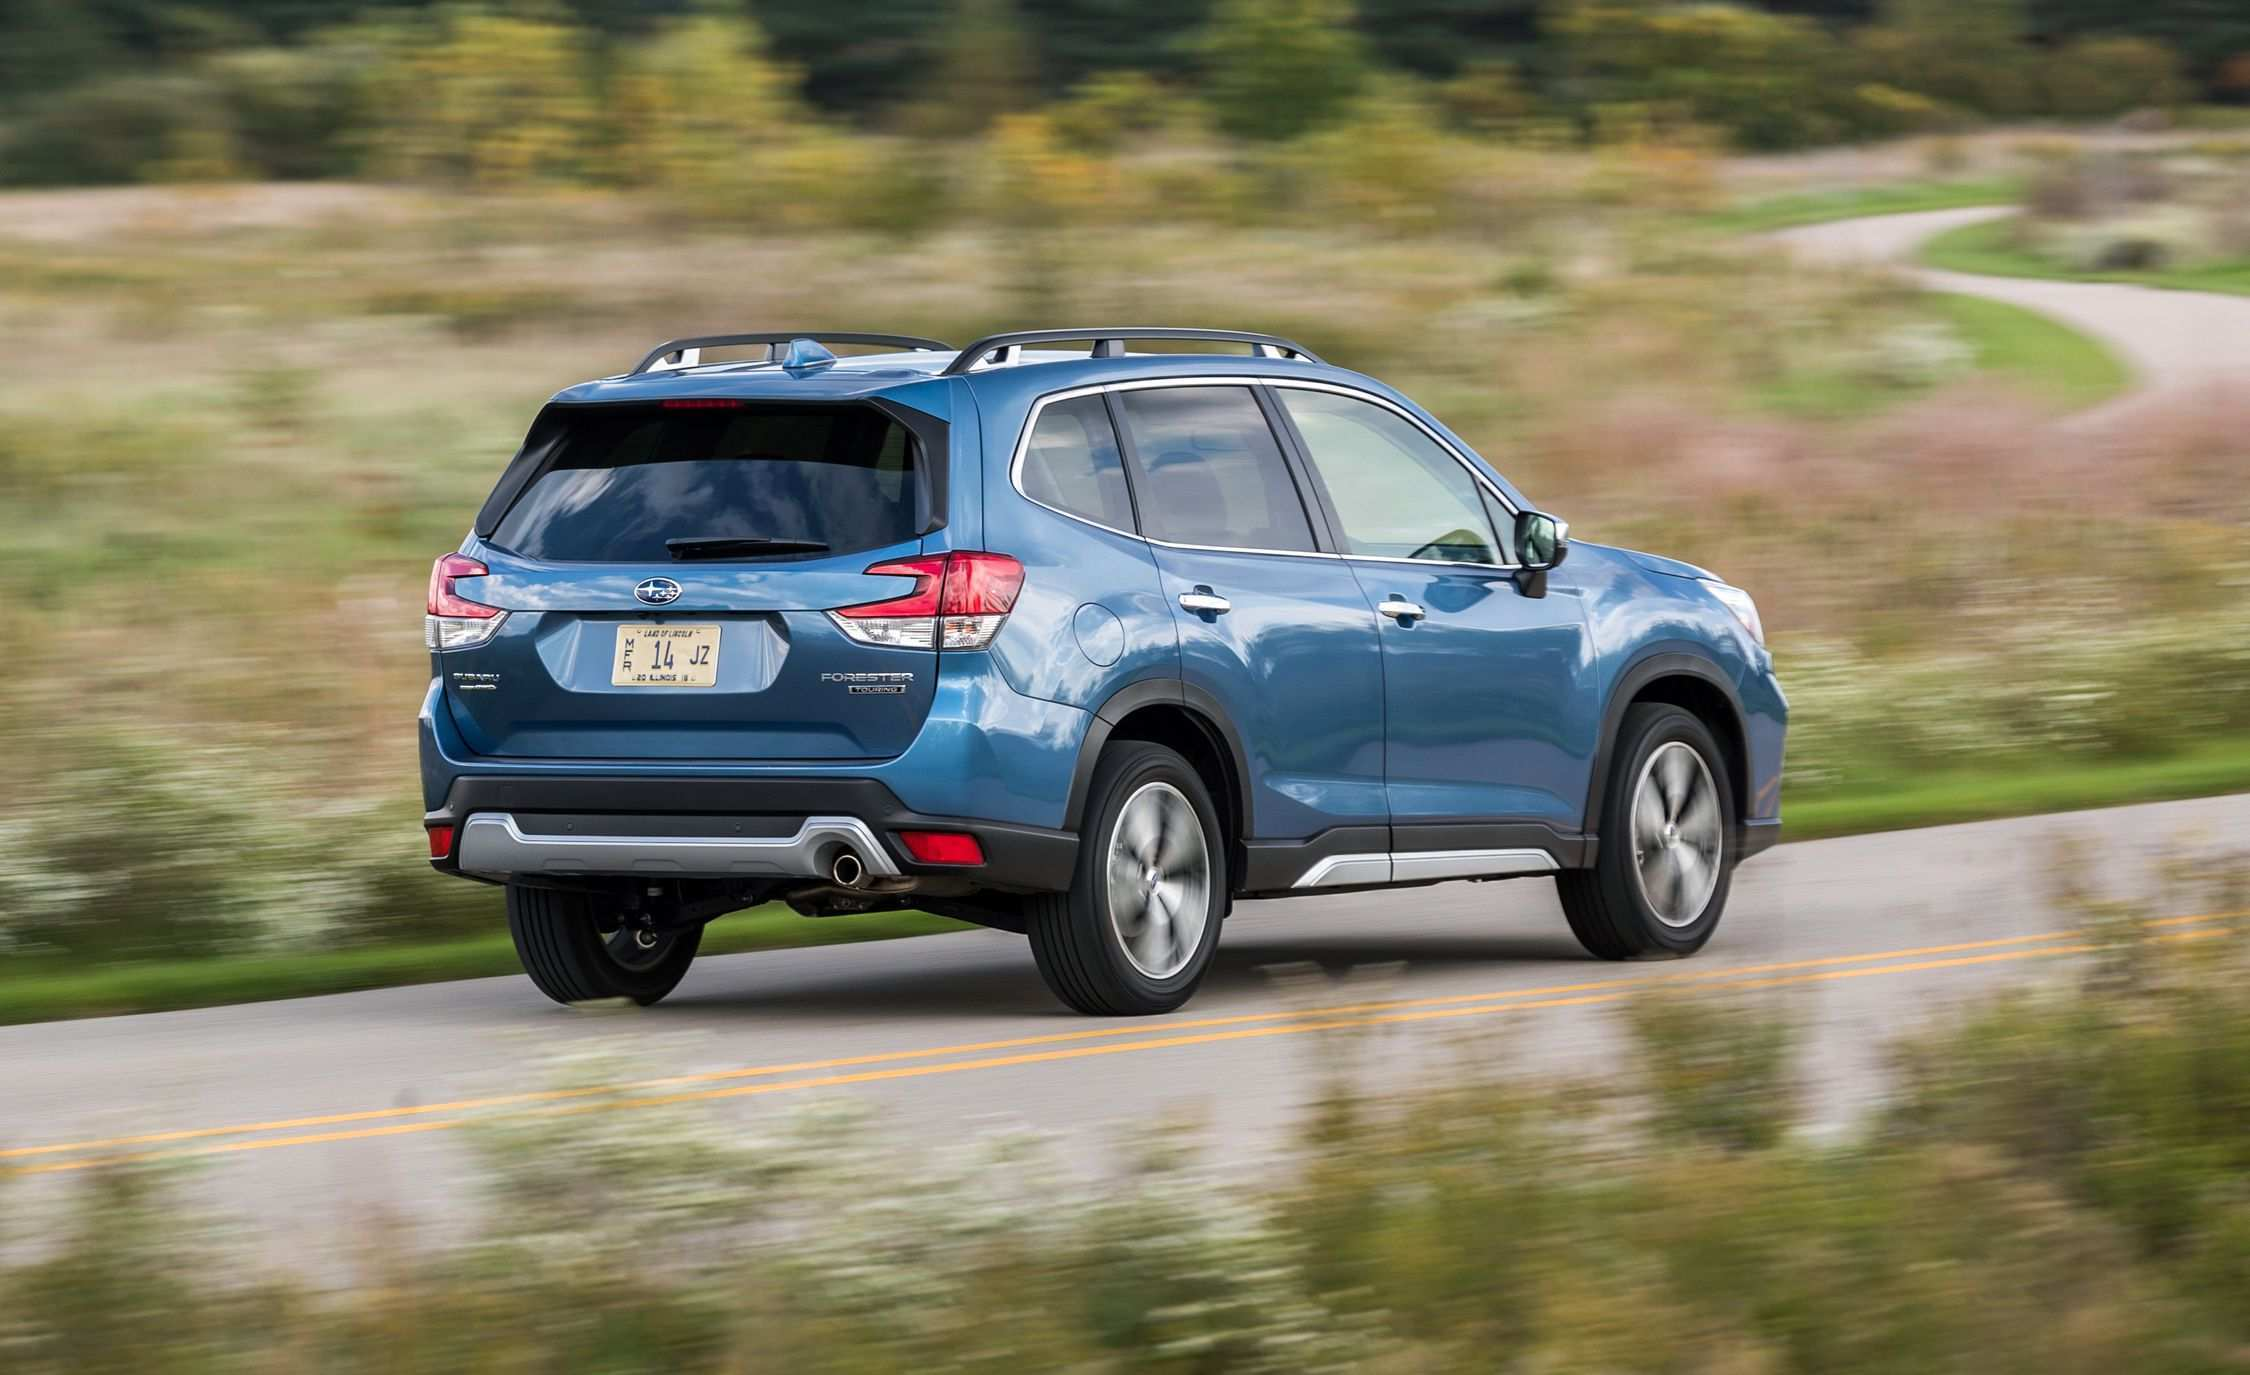 38 Best Review 2019 Subaru Suv Concept for 2019 Subaru Suv